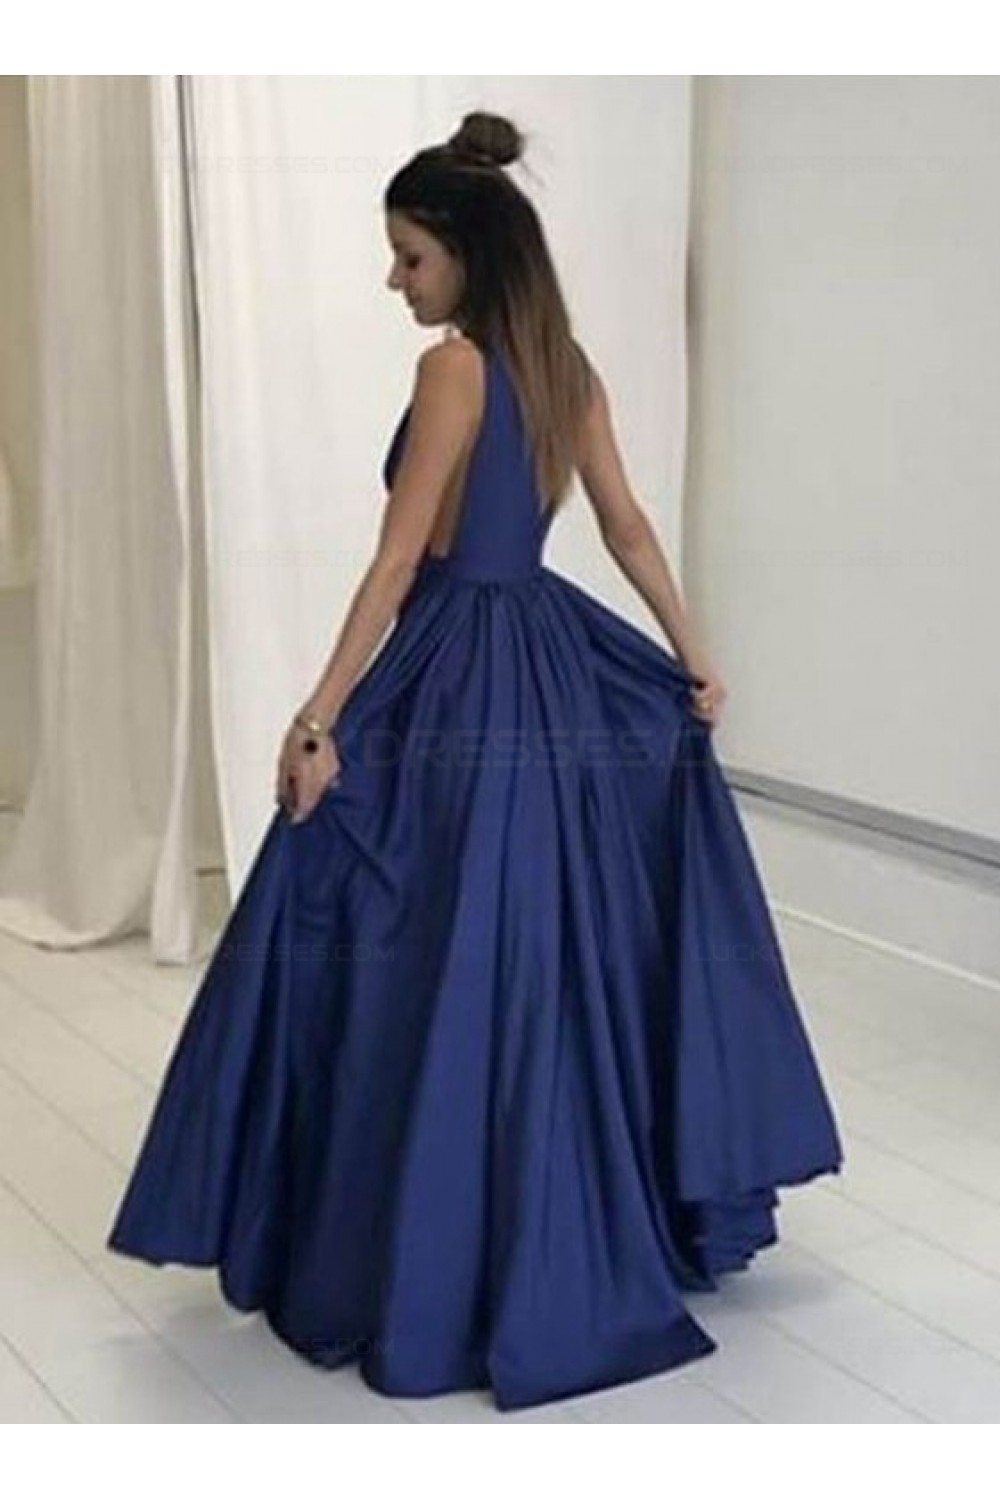 Blue Low V-Neck Prom Dresses Party Evening Gowns 3020274